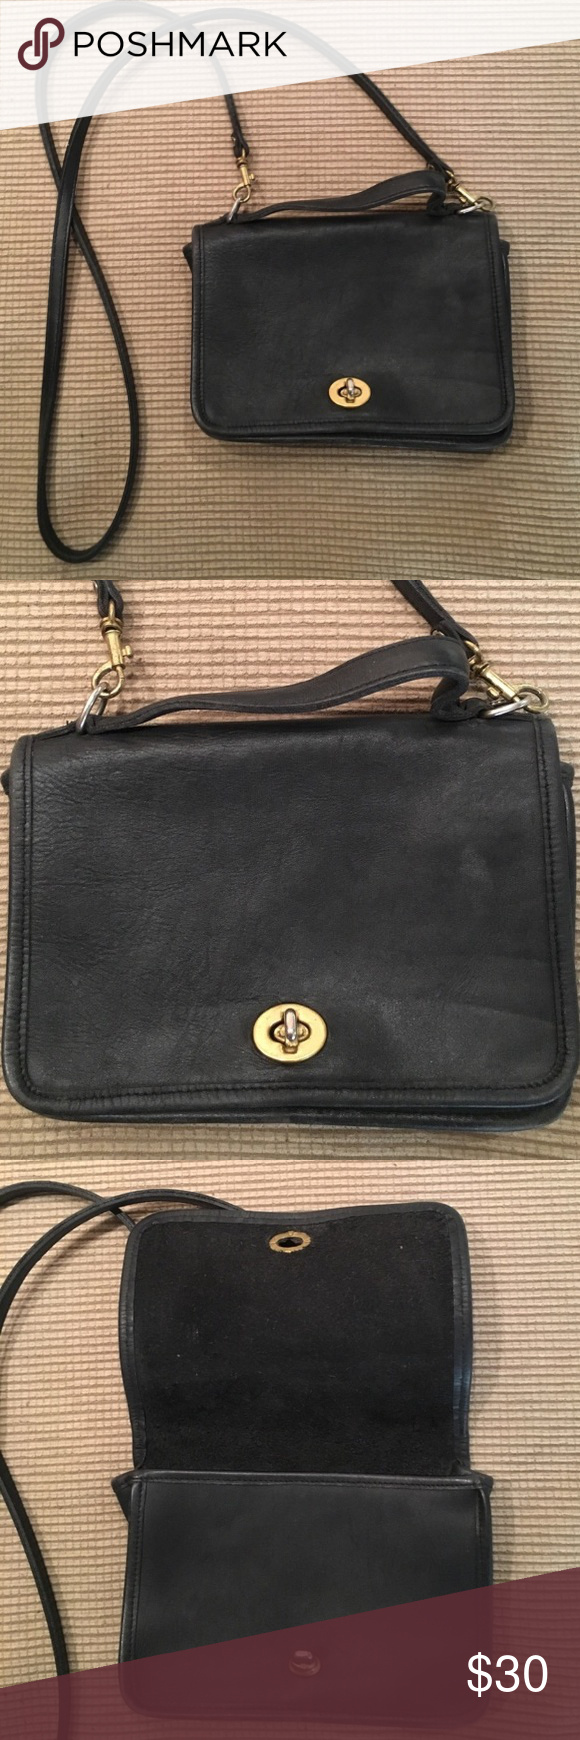 Small Black Coach Crossbody Bag For Tall Las Vintage Tiny Purse Reposh Because The Strap Is Too Long Me I Am 5 3